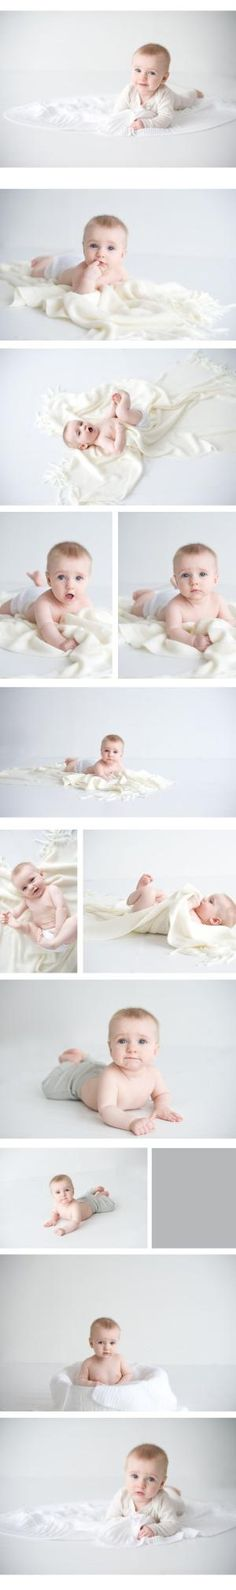 6 month baby shoot by clarissa